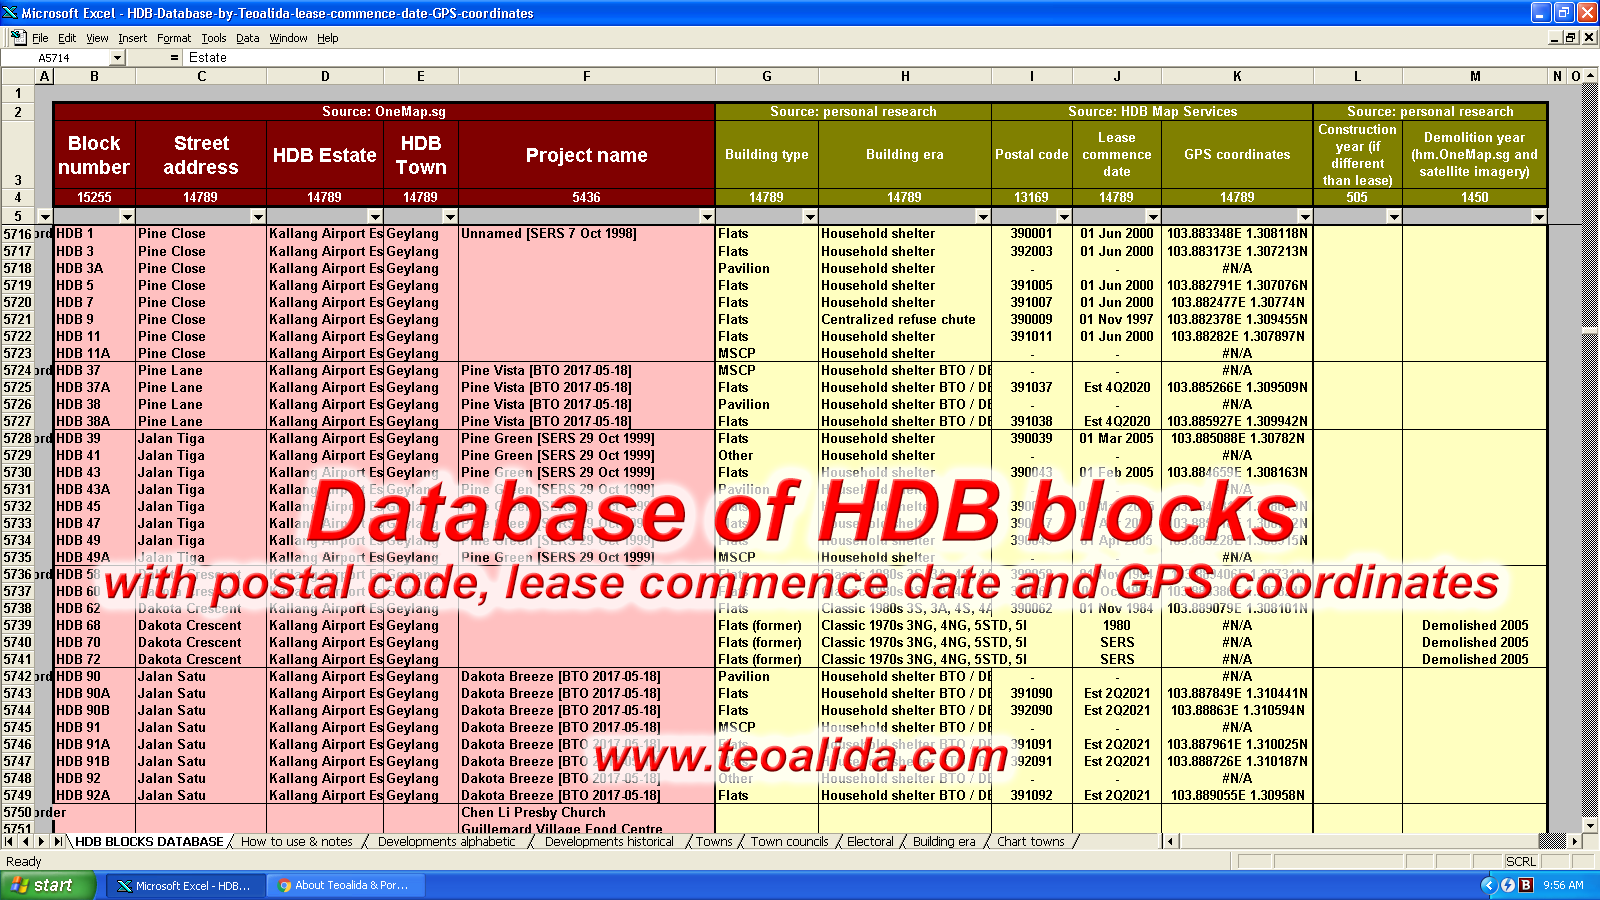 HDB Database, block number, street address, postal code, built year, GPS coordinates